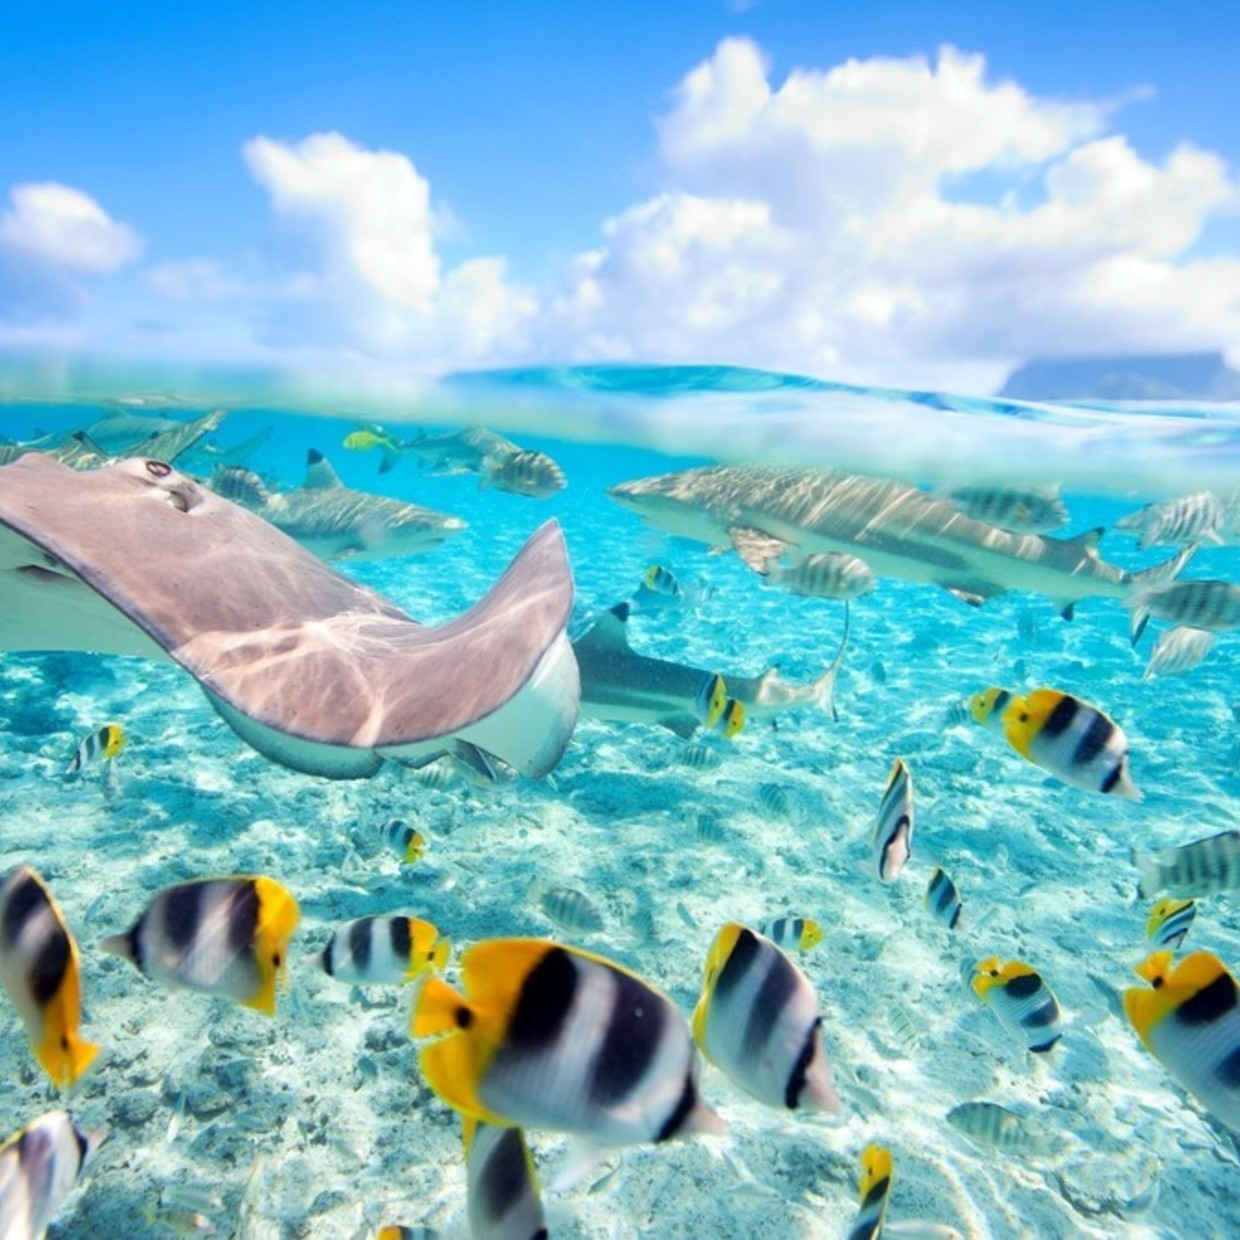 Travel all around the world and discover the underwater world with your MiniDive 😁✈️🐠 #snorkeling #minidive #fish  #travel #sea #paradise #underwater   Find our products on our website : www.minidive.com